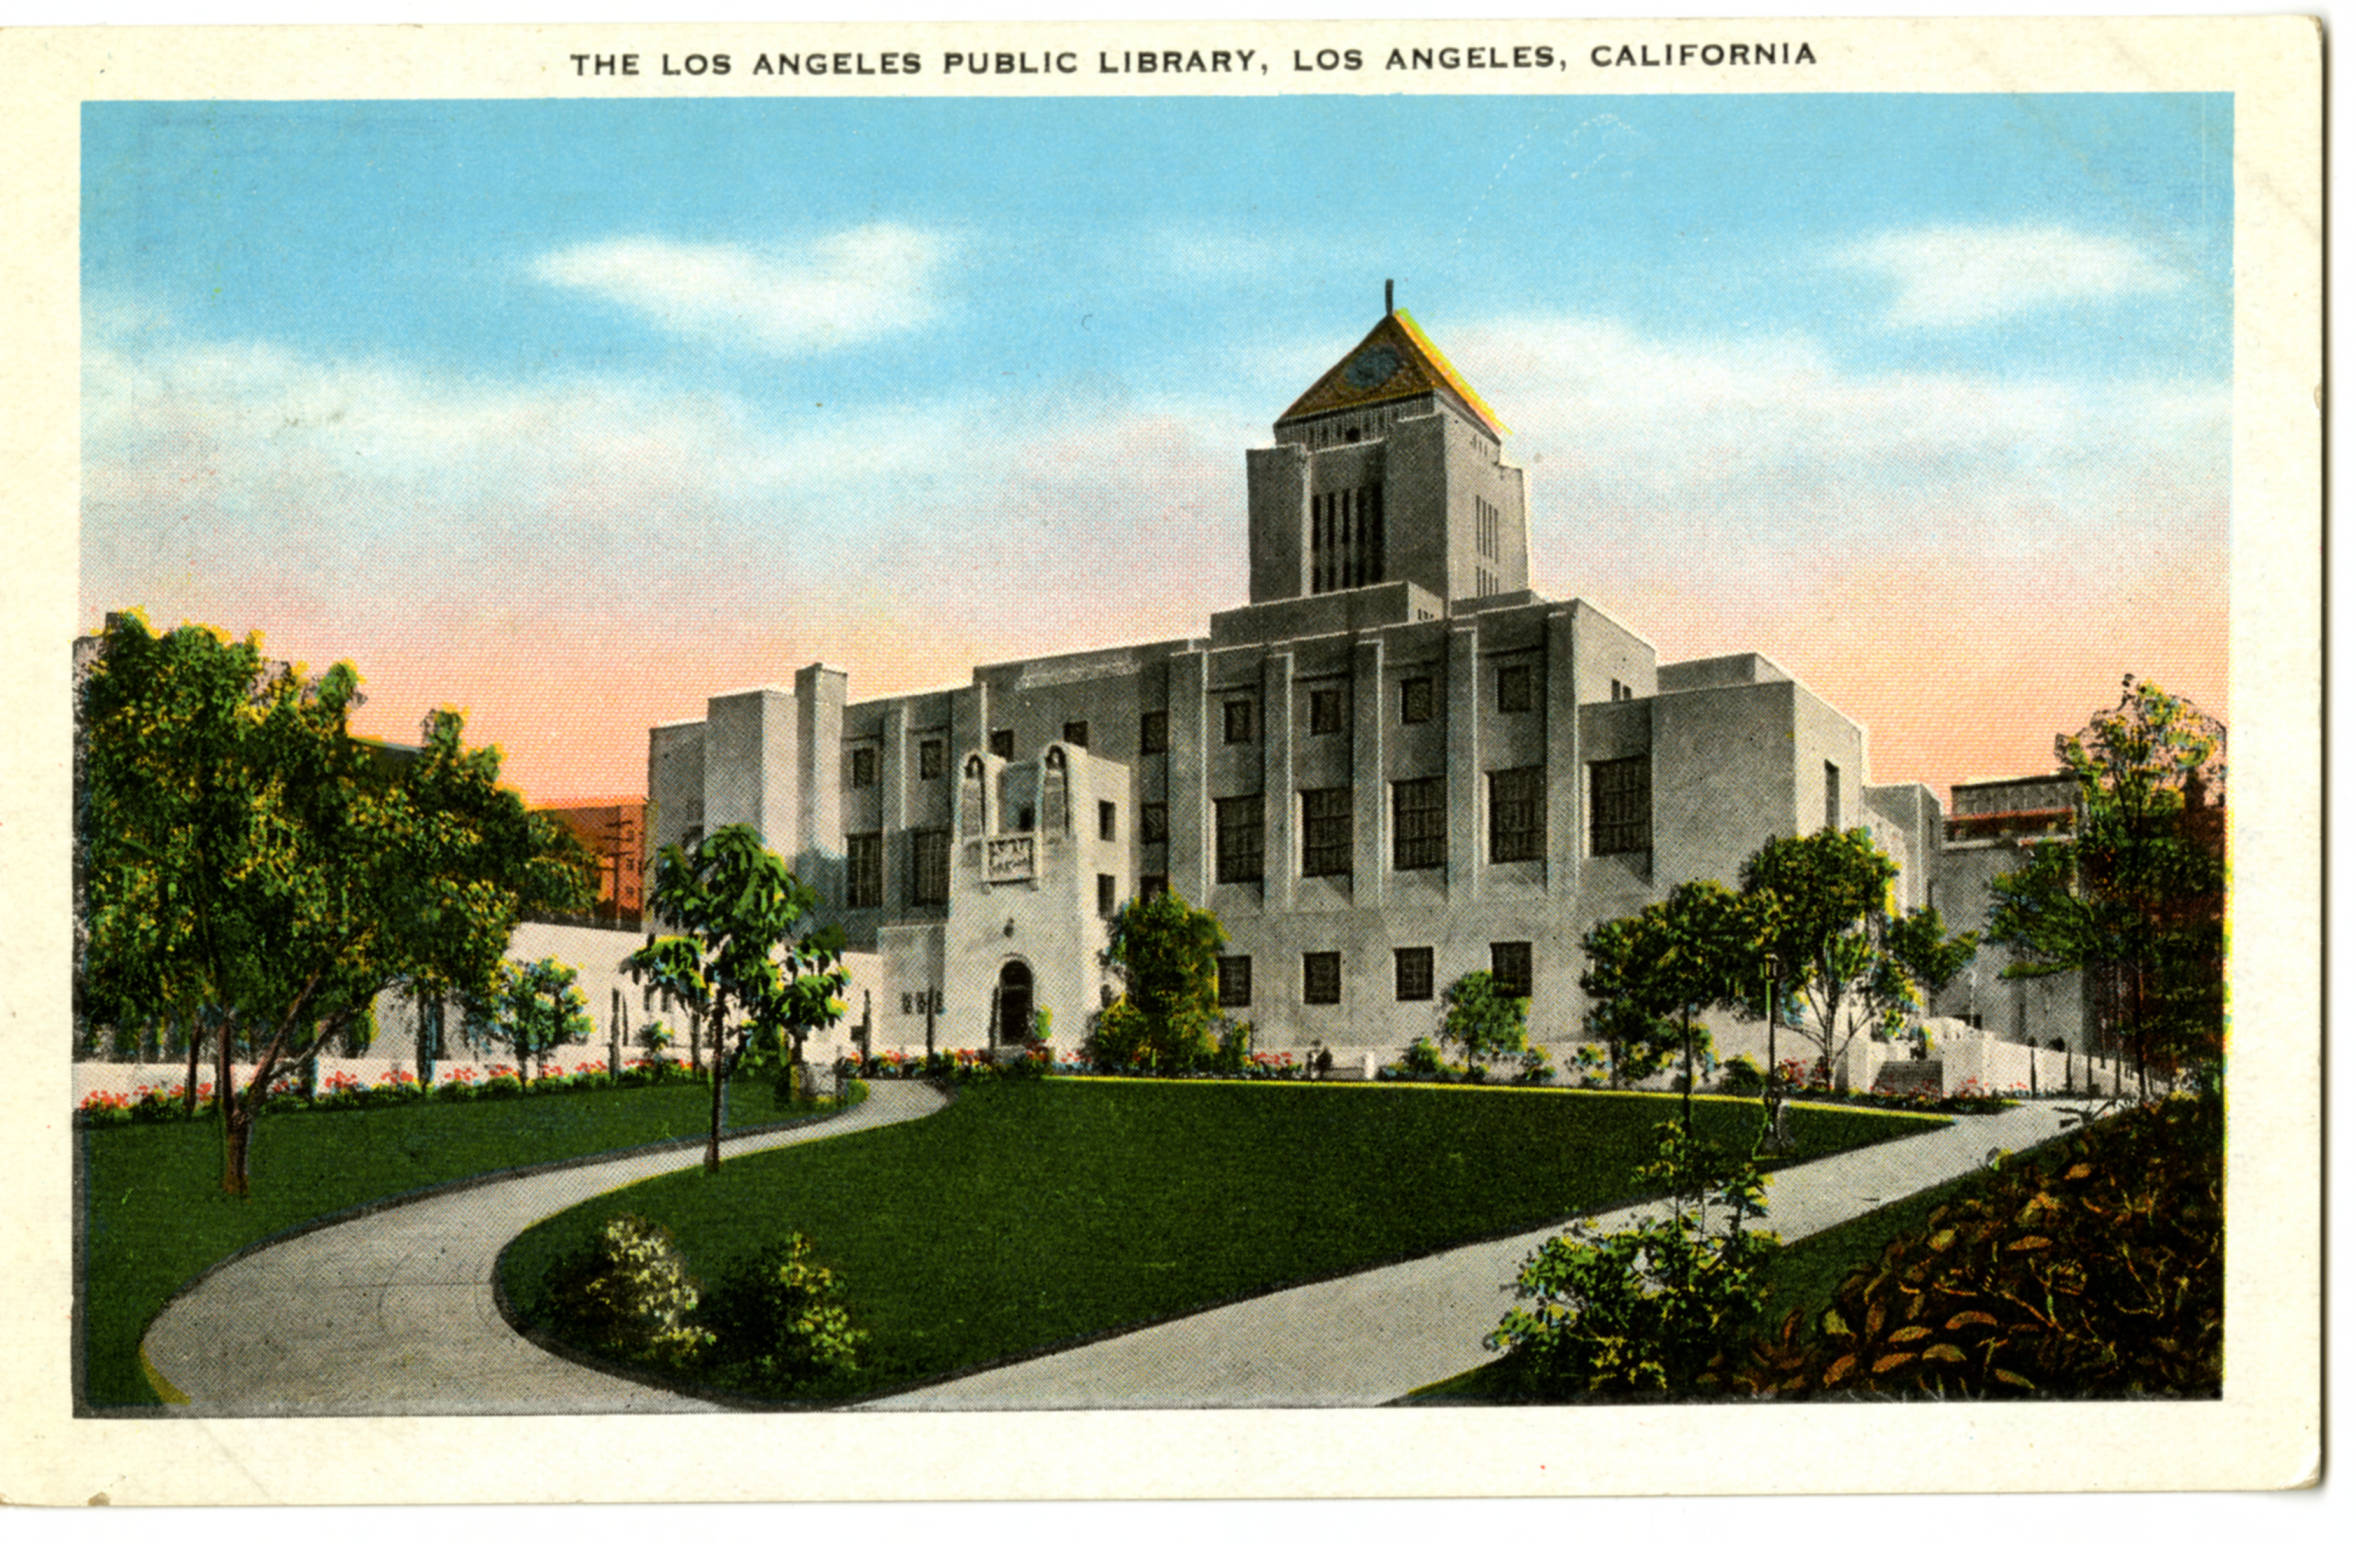 Circa 1930 postcard of the Los Angeles Central Library